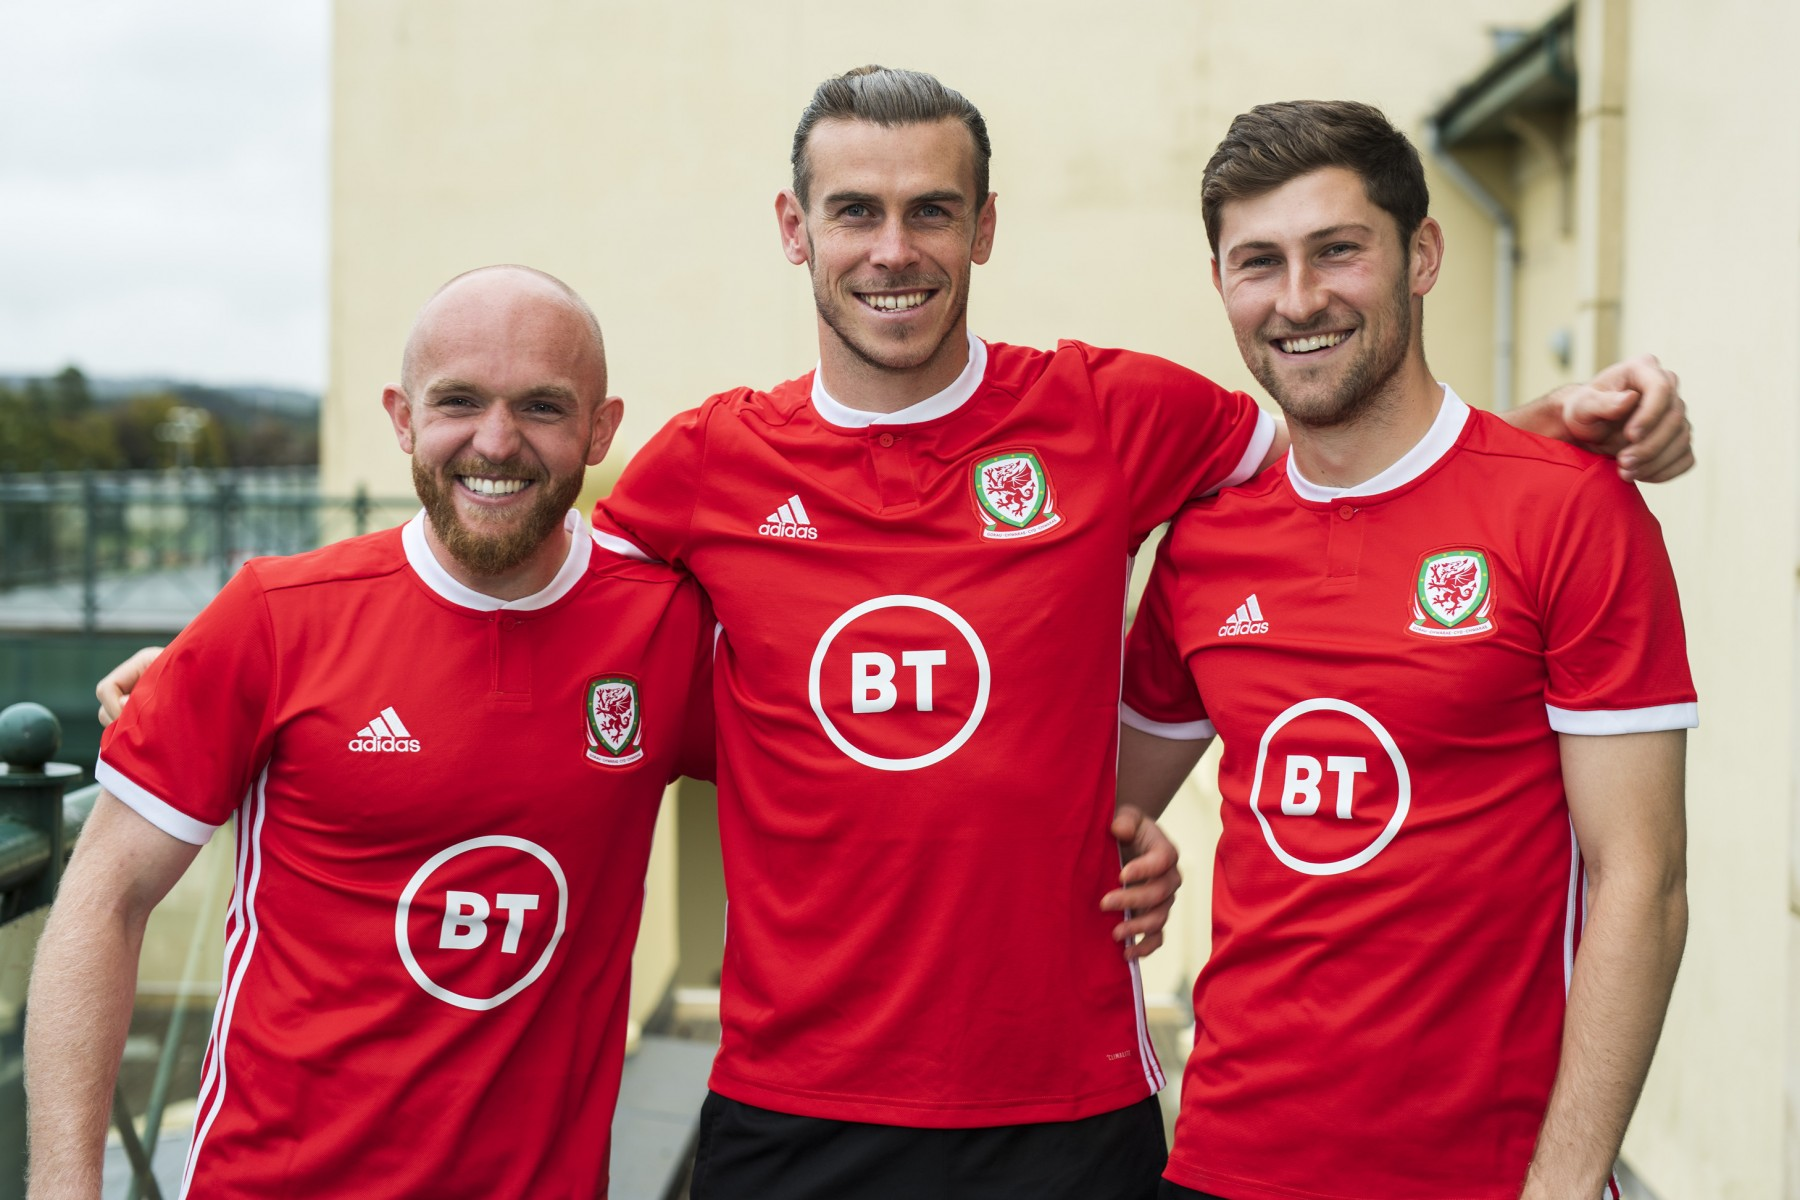 BT signs five year deal to sponsor FAW